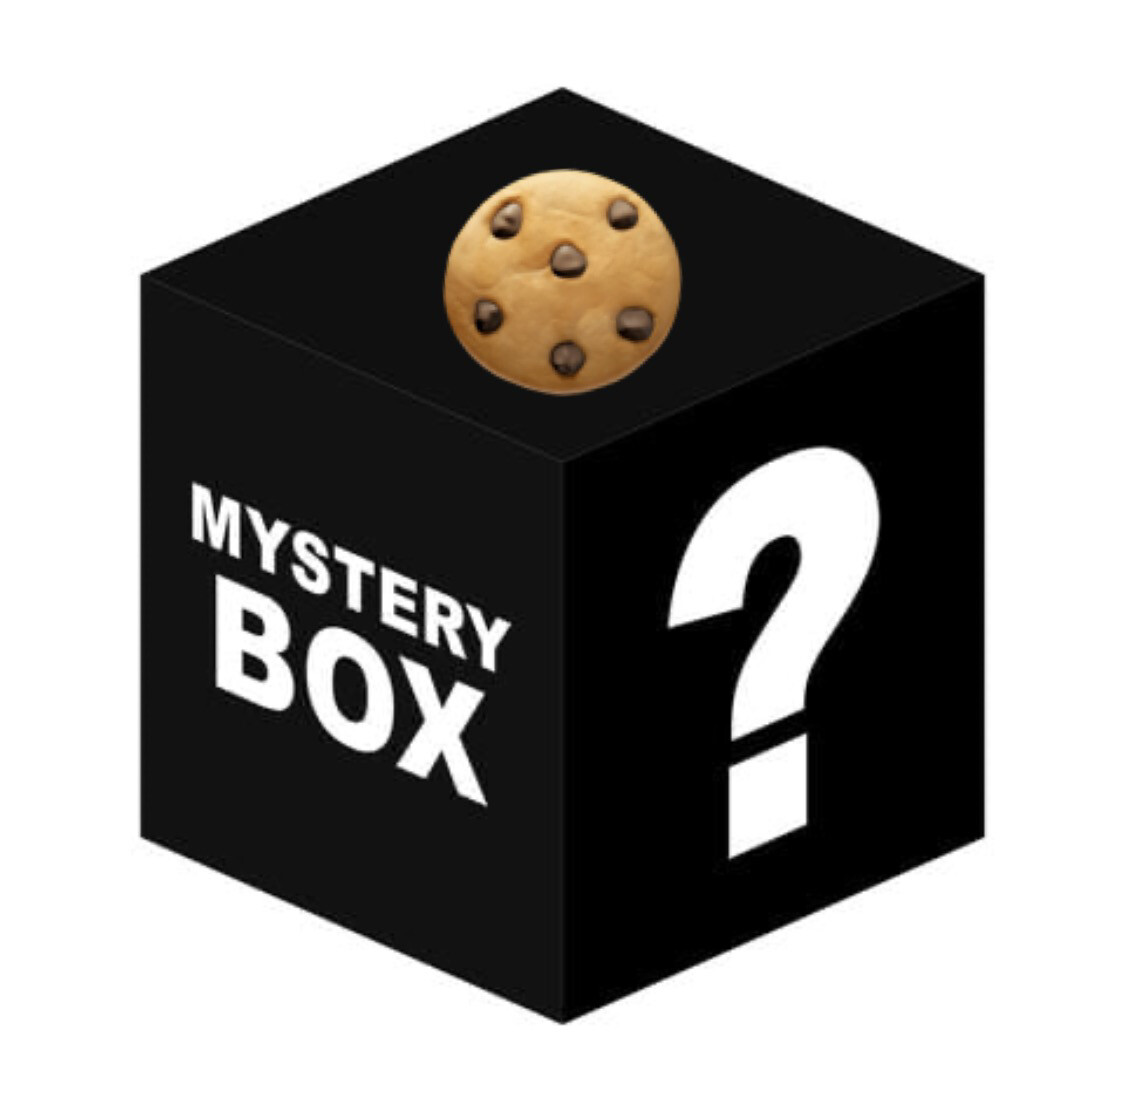 MYSTERY BOX (4 Cookies)